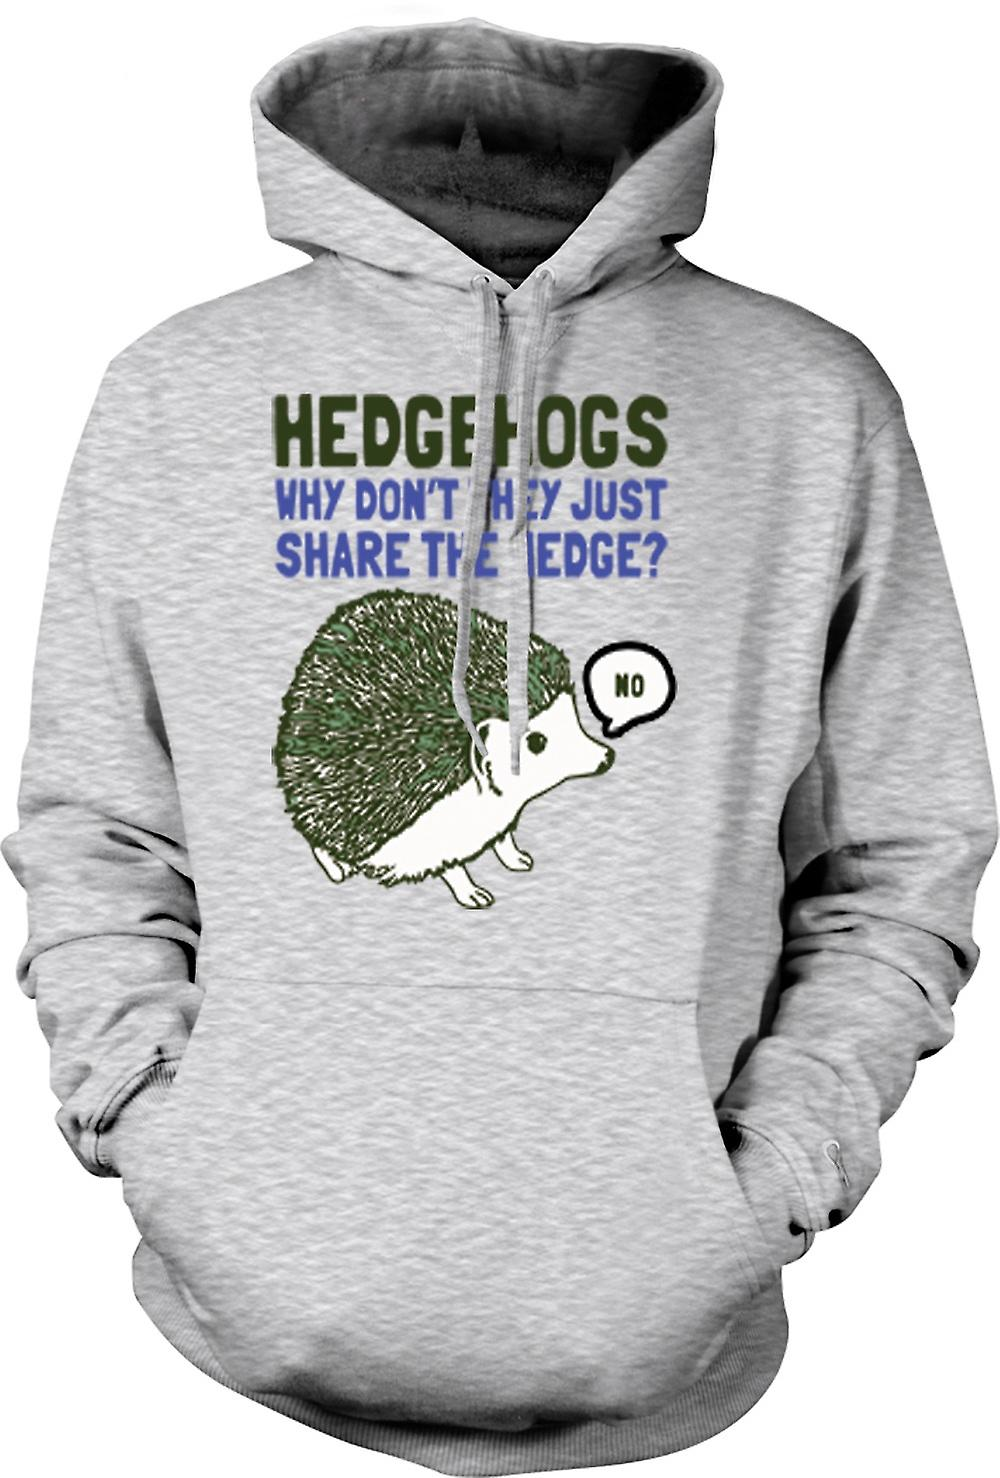 Mens Hoodie - Hedgehogs Why Don't They Just Share The Hedge?